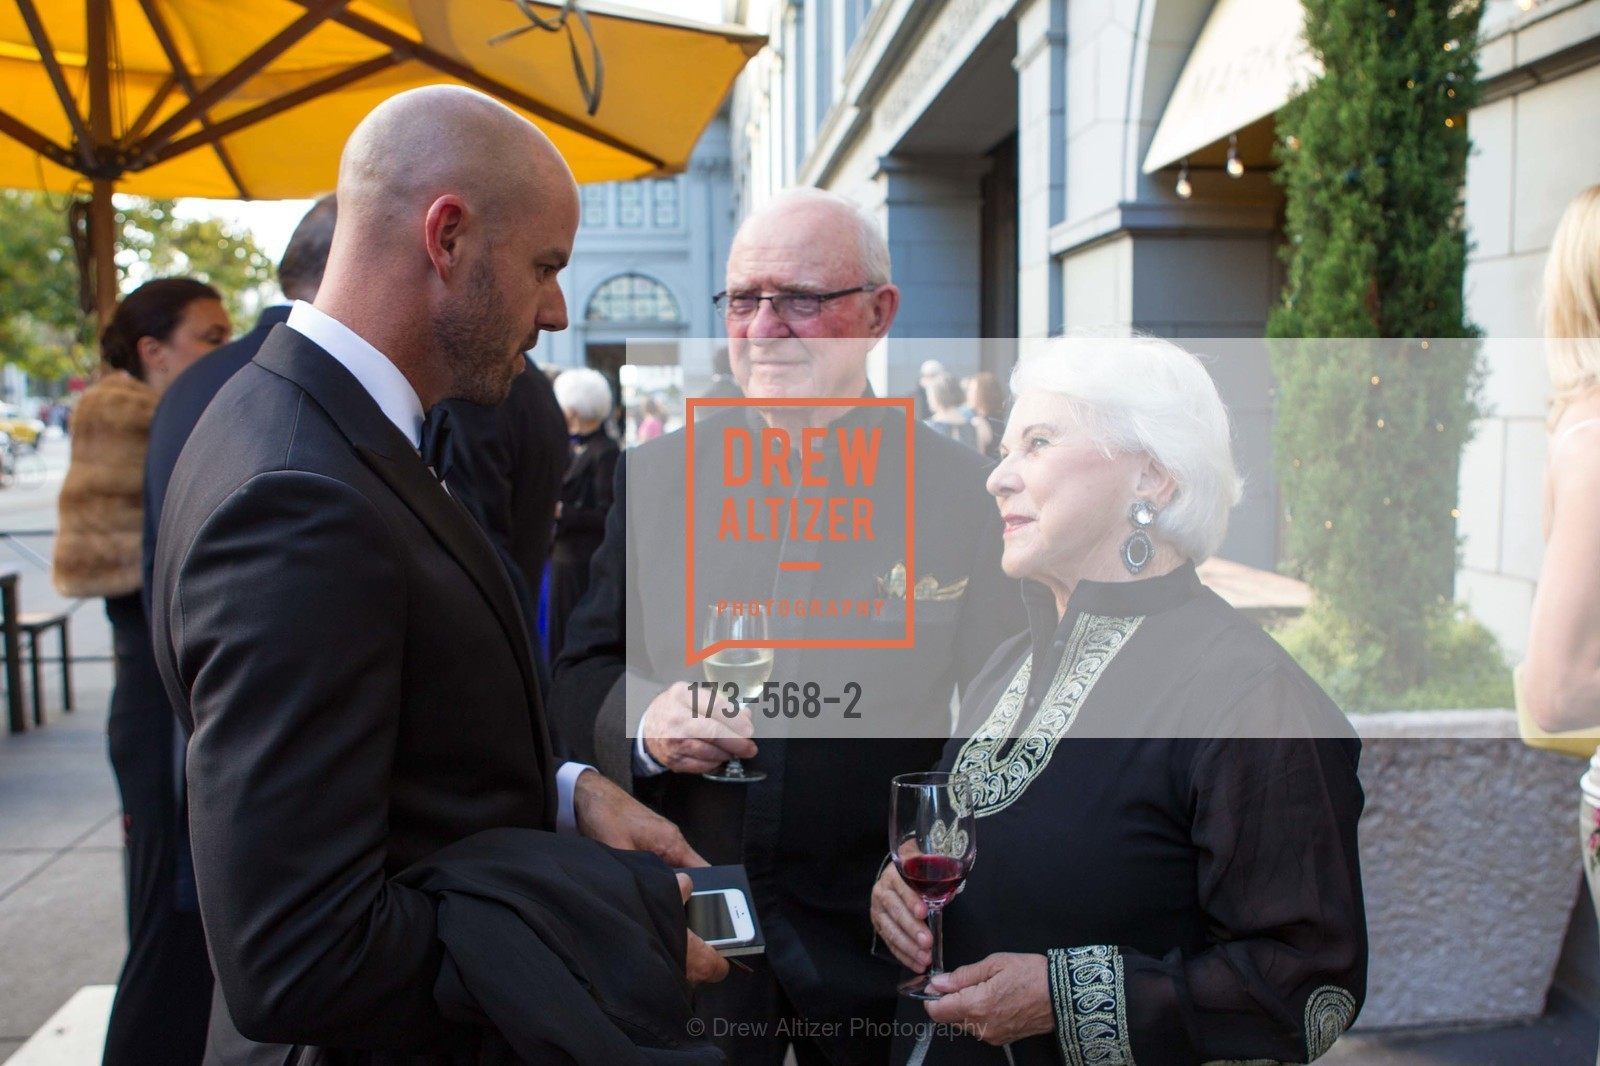 Paul Slawson, Mary Slawson, SOTHEBY'S  Hosts a Private Viewing of Highlights from the Collection of MRS. PAUL MELLON, US, September 17th, 2014,Drew Altizer, Drew Altizer Photography, full-service agency, private events, San Francisco photographer, photographer california